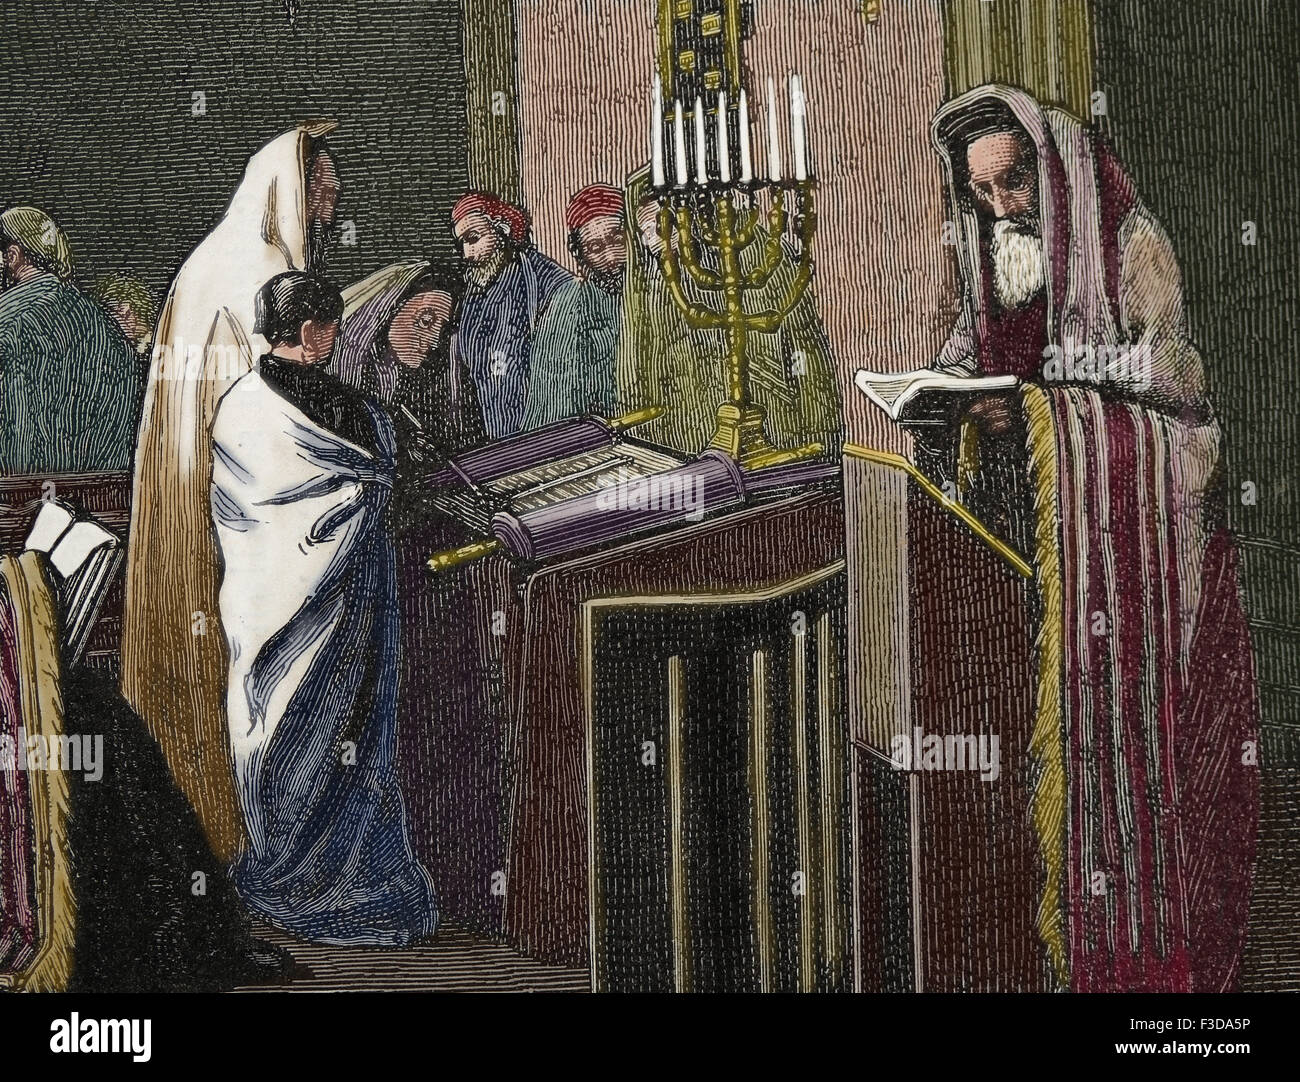 Religion. Judaism. Rabbi is reading in Torah at Synagogue. Engraving by Froment, published on La Illustracion, 1870, - Stock Image